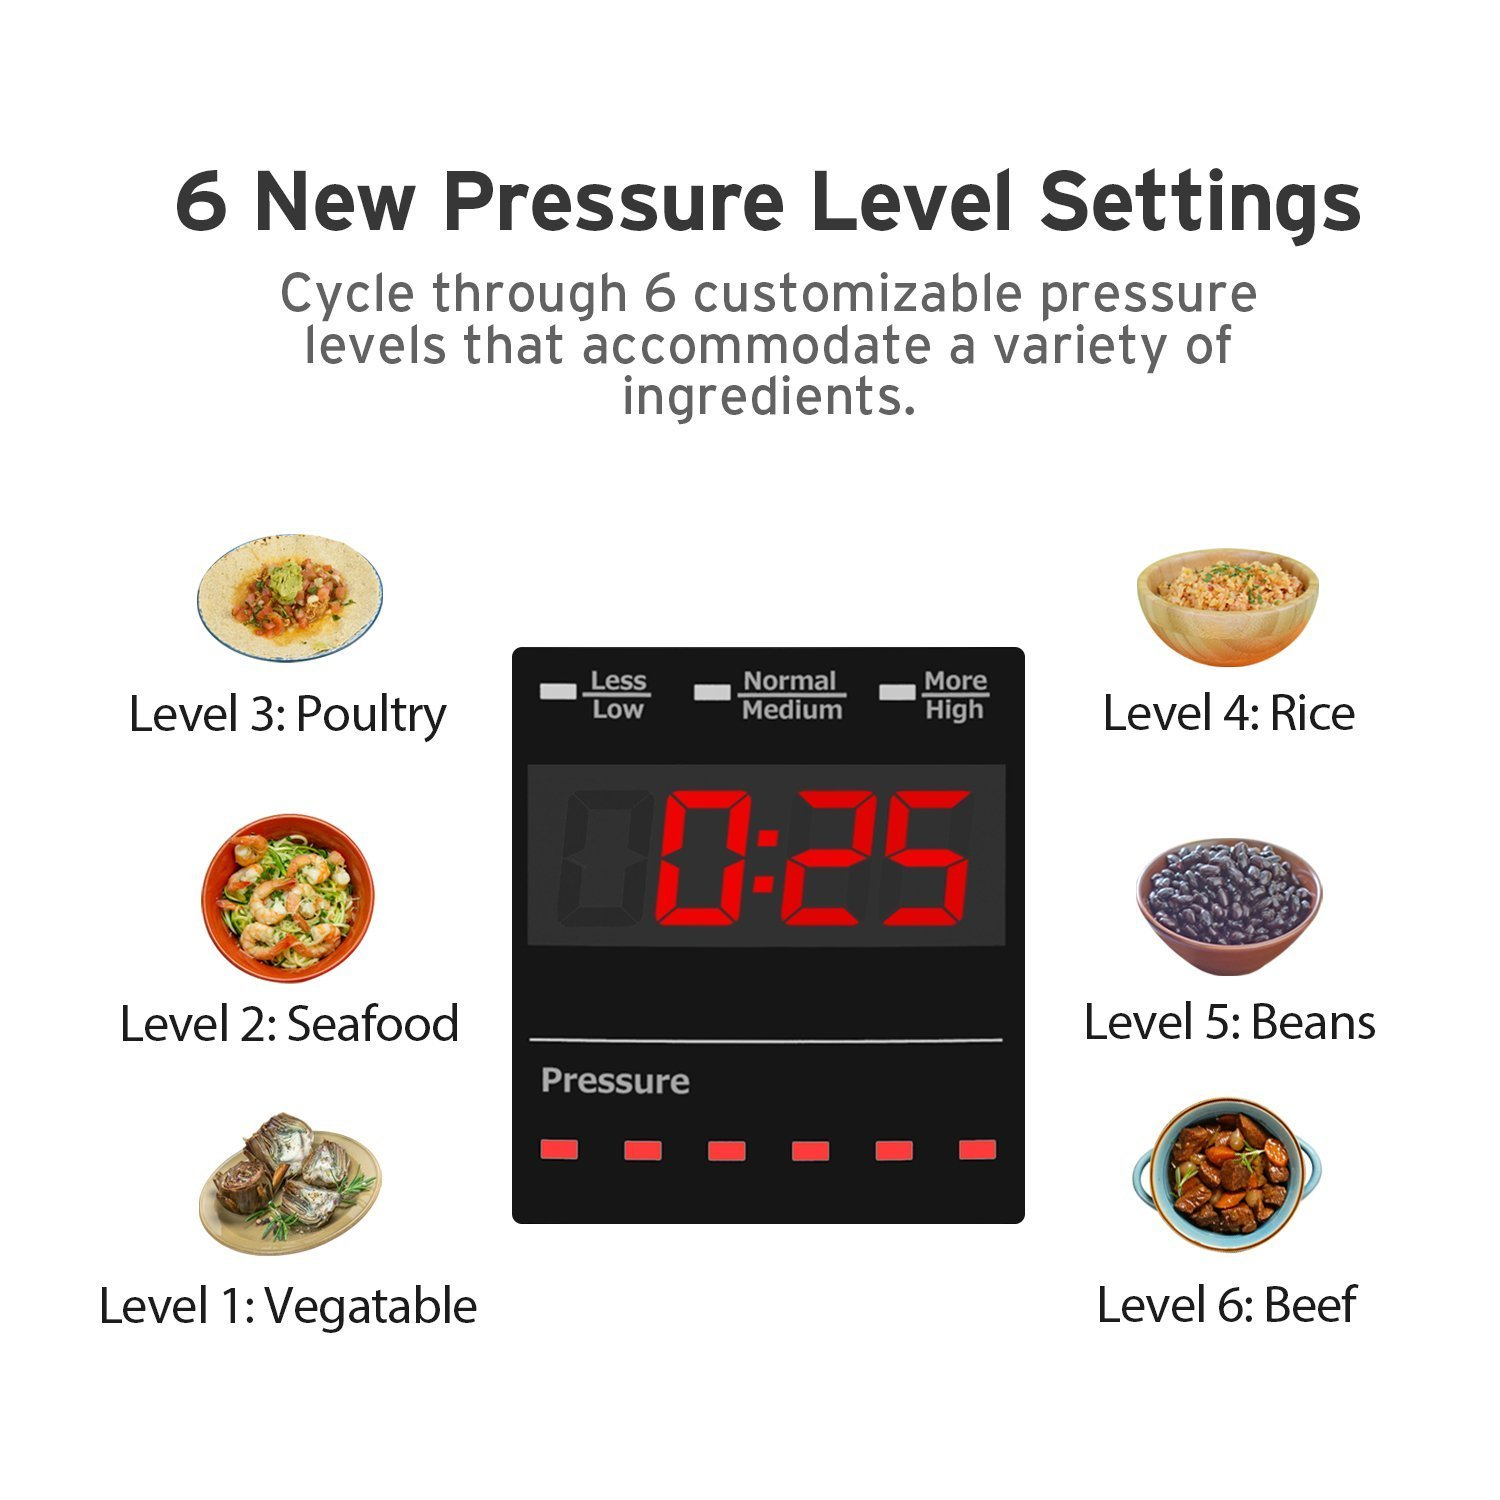 COSORI 8 Quart 8-in-1 Multi-Functional Programmable Pressure Cooker, Slow Cooker, Rice Cooker, Steamer, Sauté, Yogurt Maker, Hot Pot and Warmer, Full Accessories Included, Stainless Steel by COSORI (Image #6)